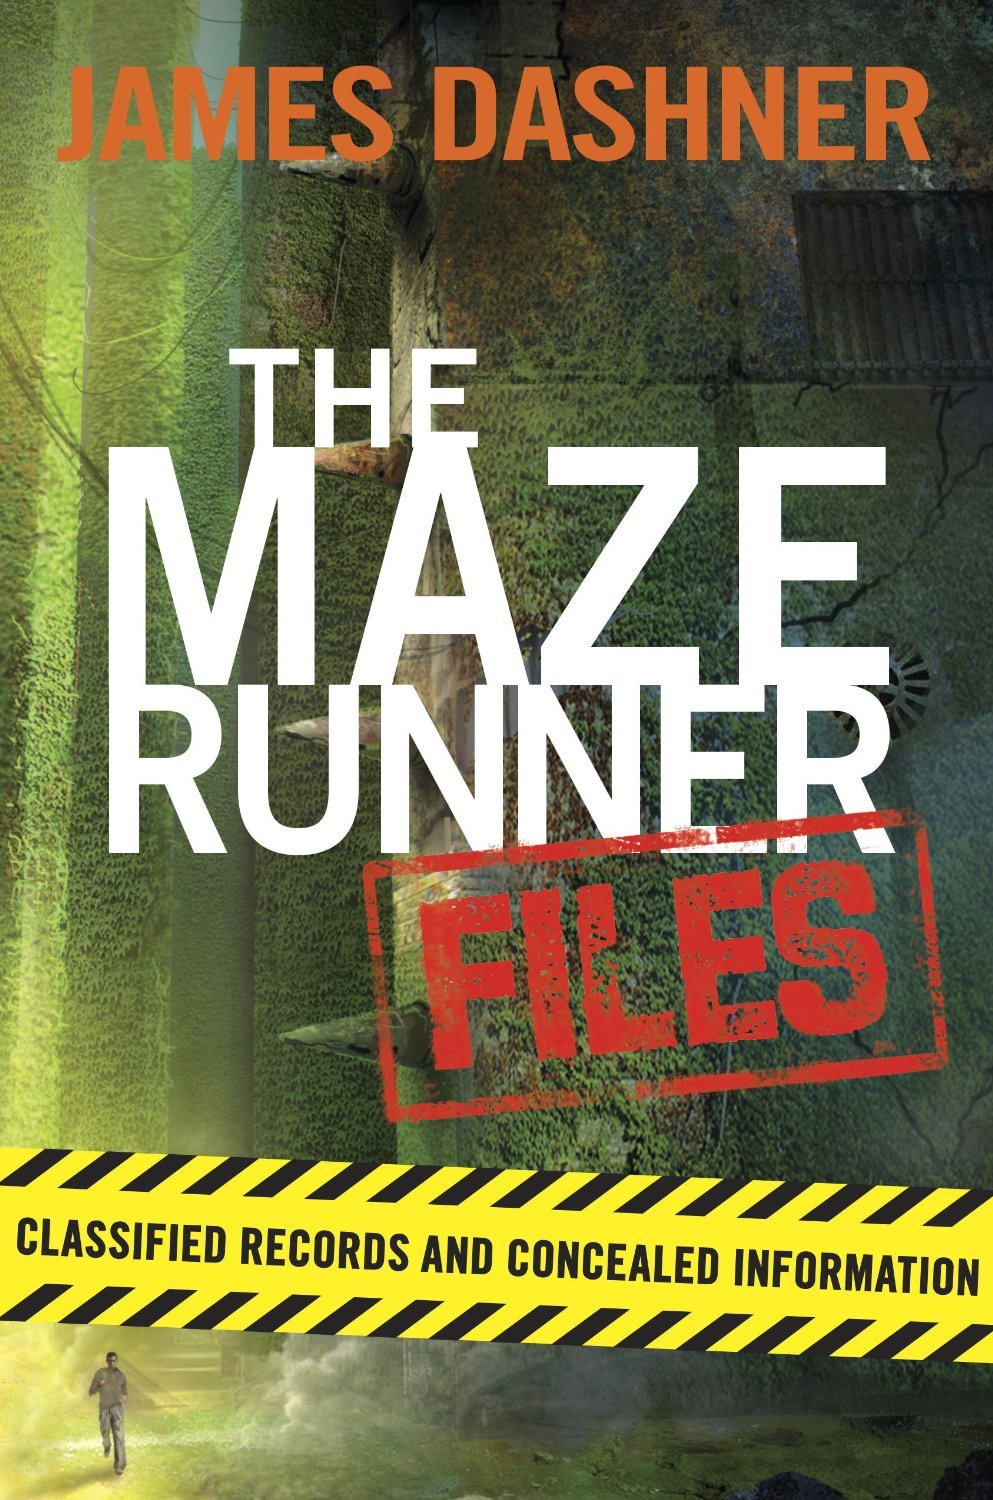 The Maze Runner Files - The Maze Runner Wiki